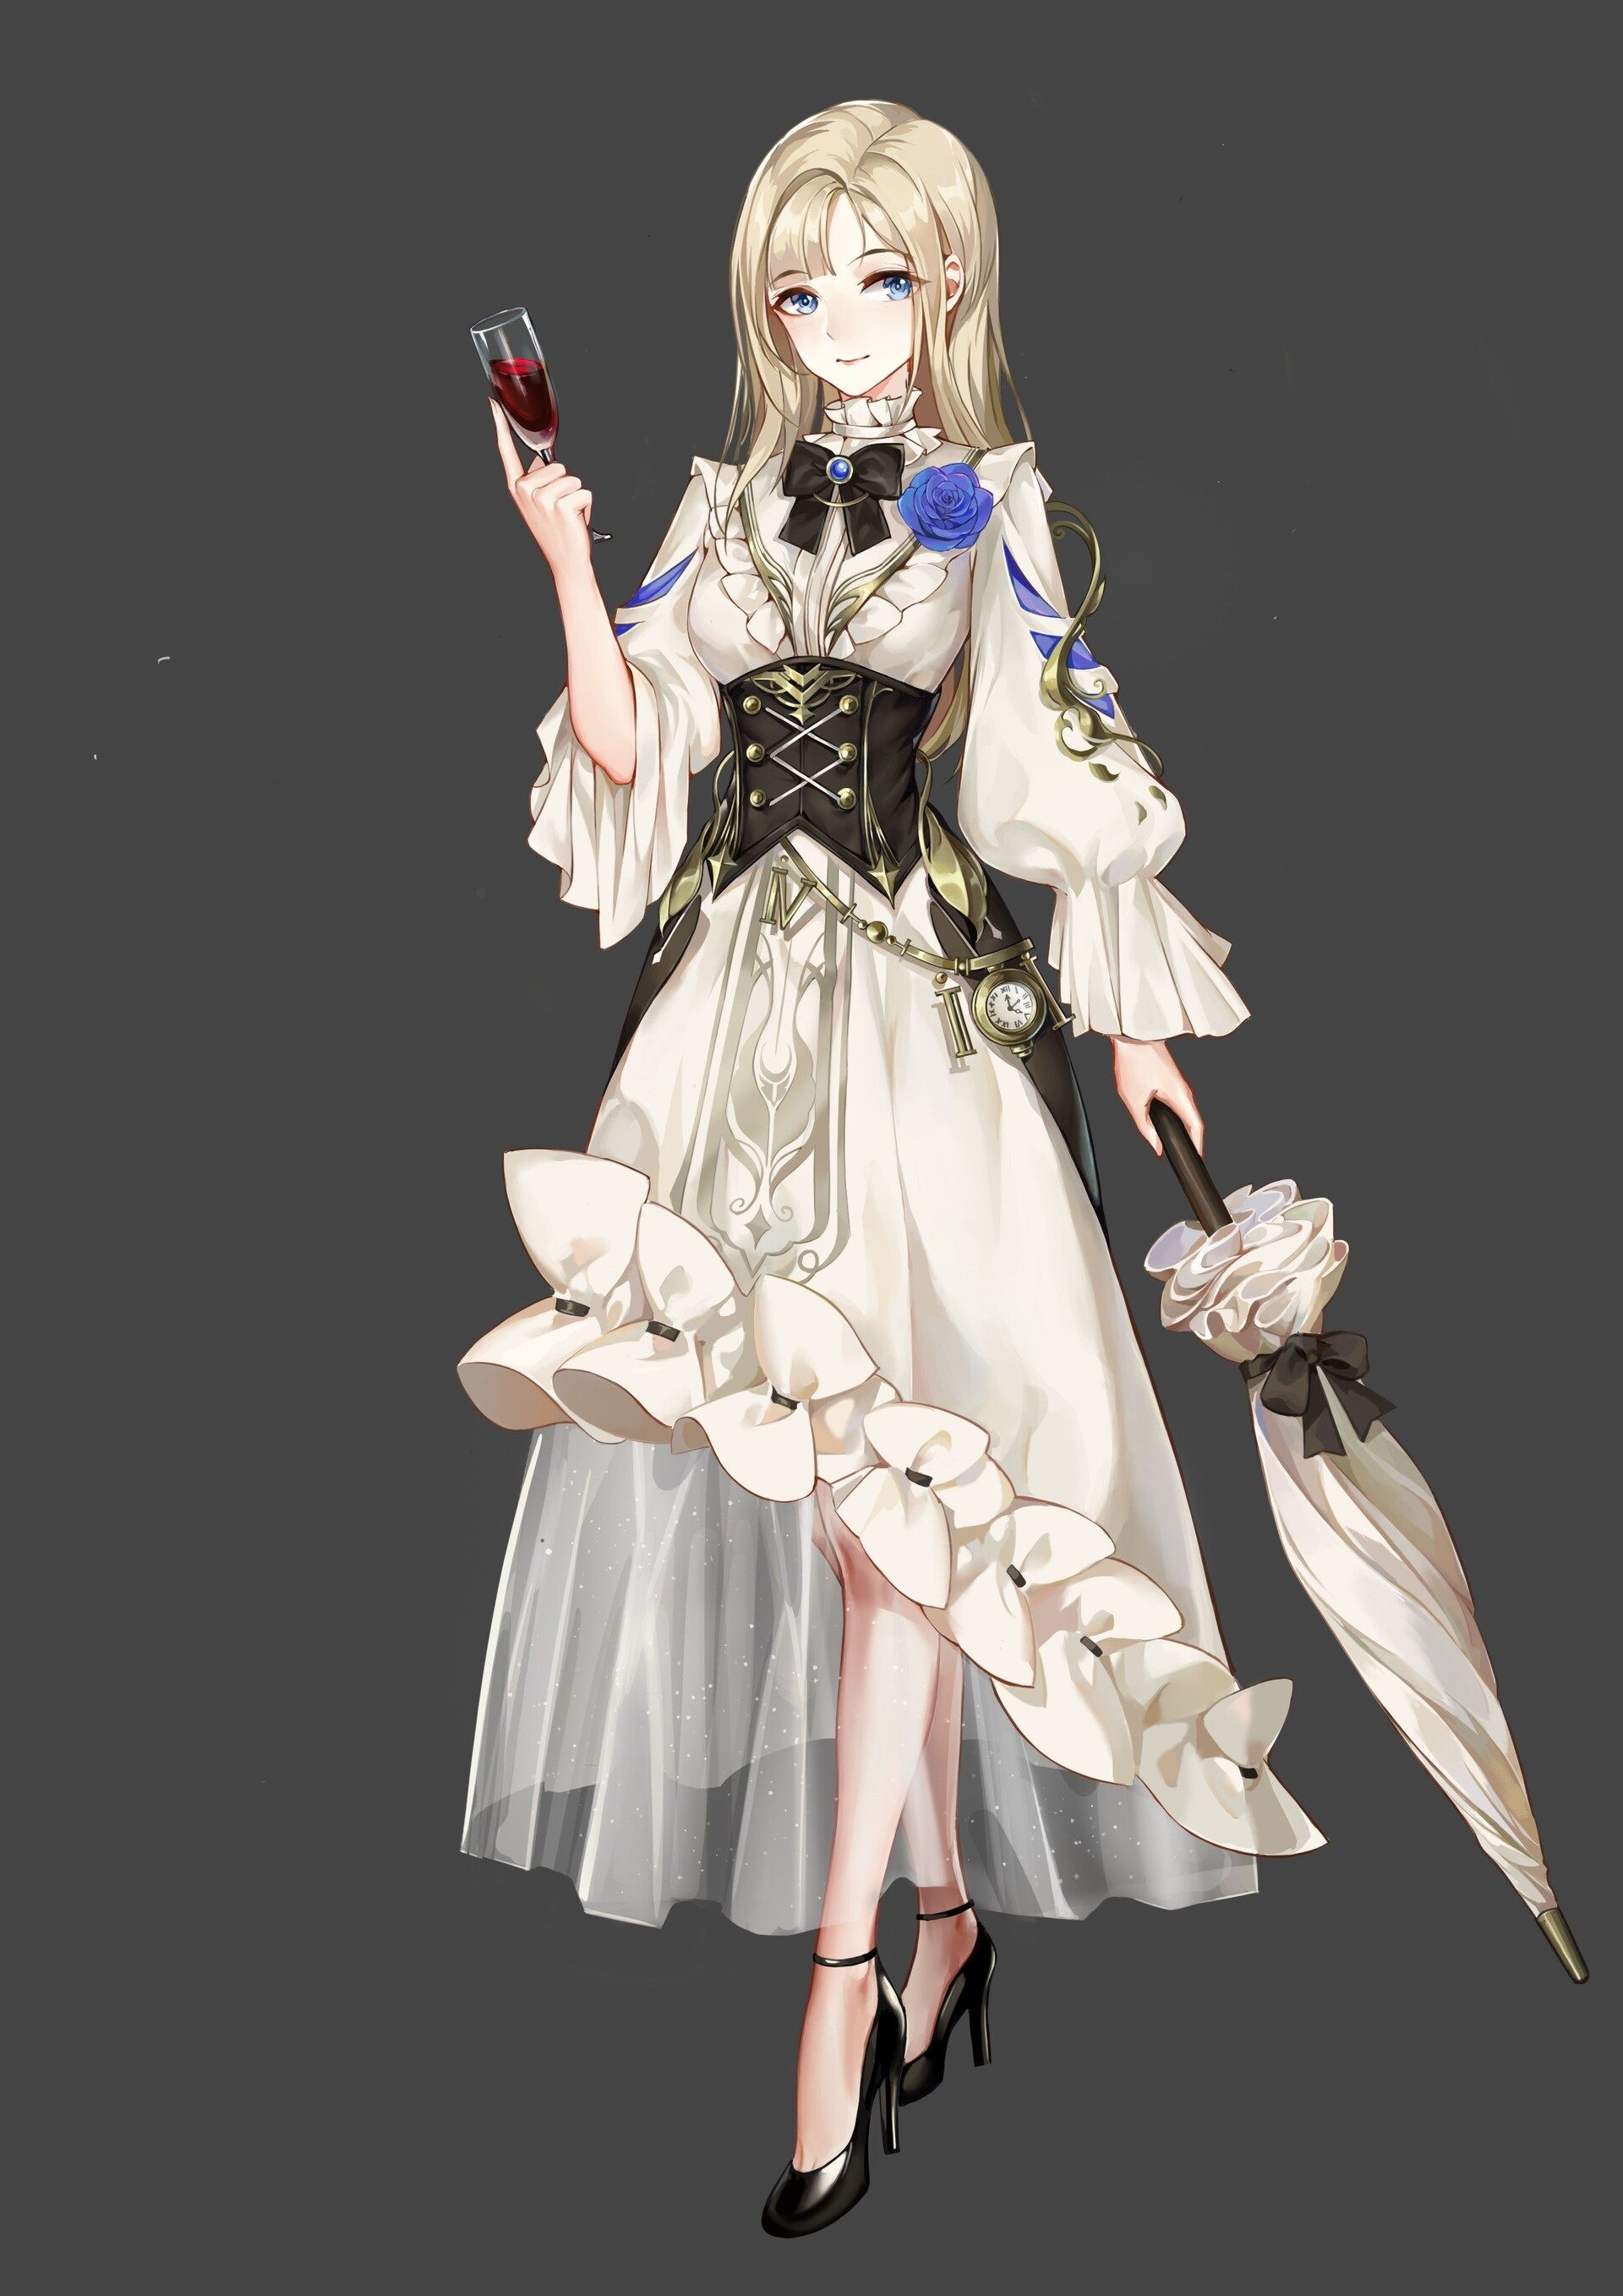 Pin On Rpg Female Character 18